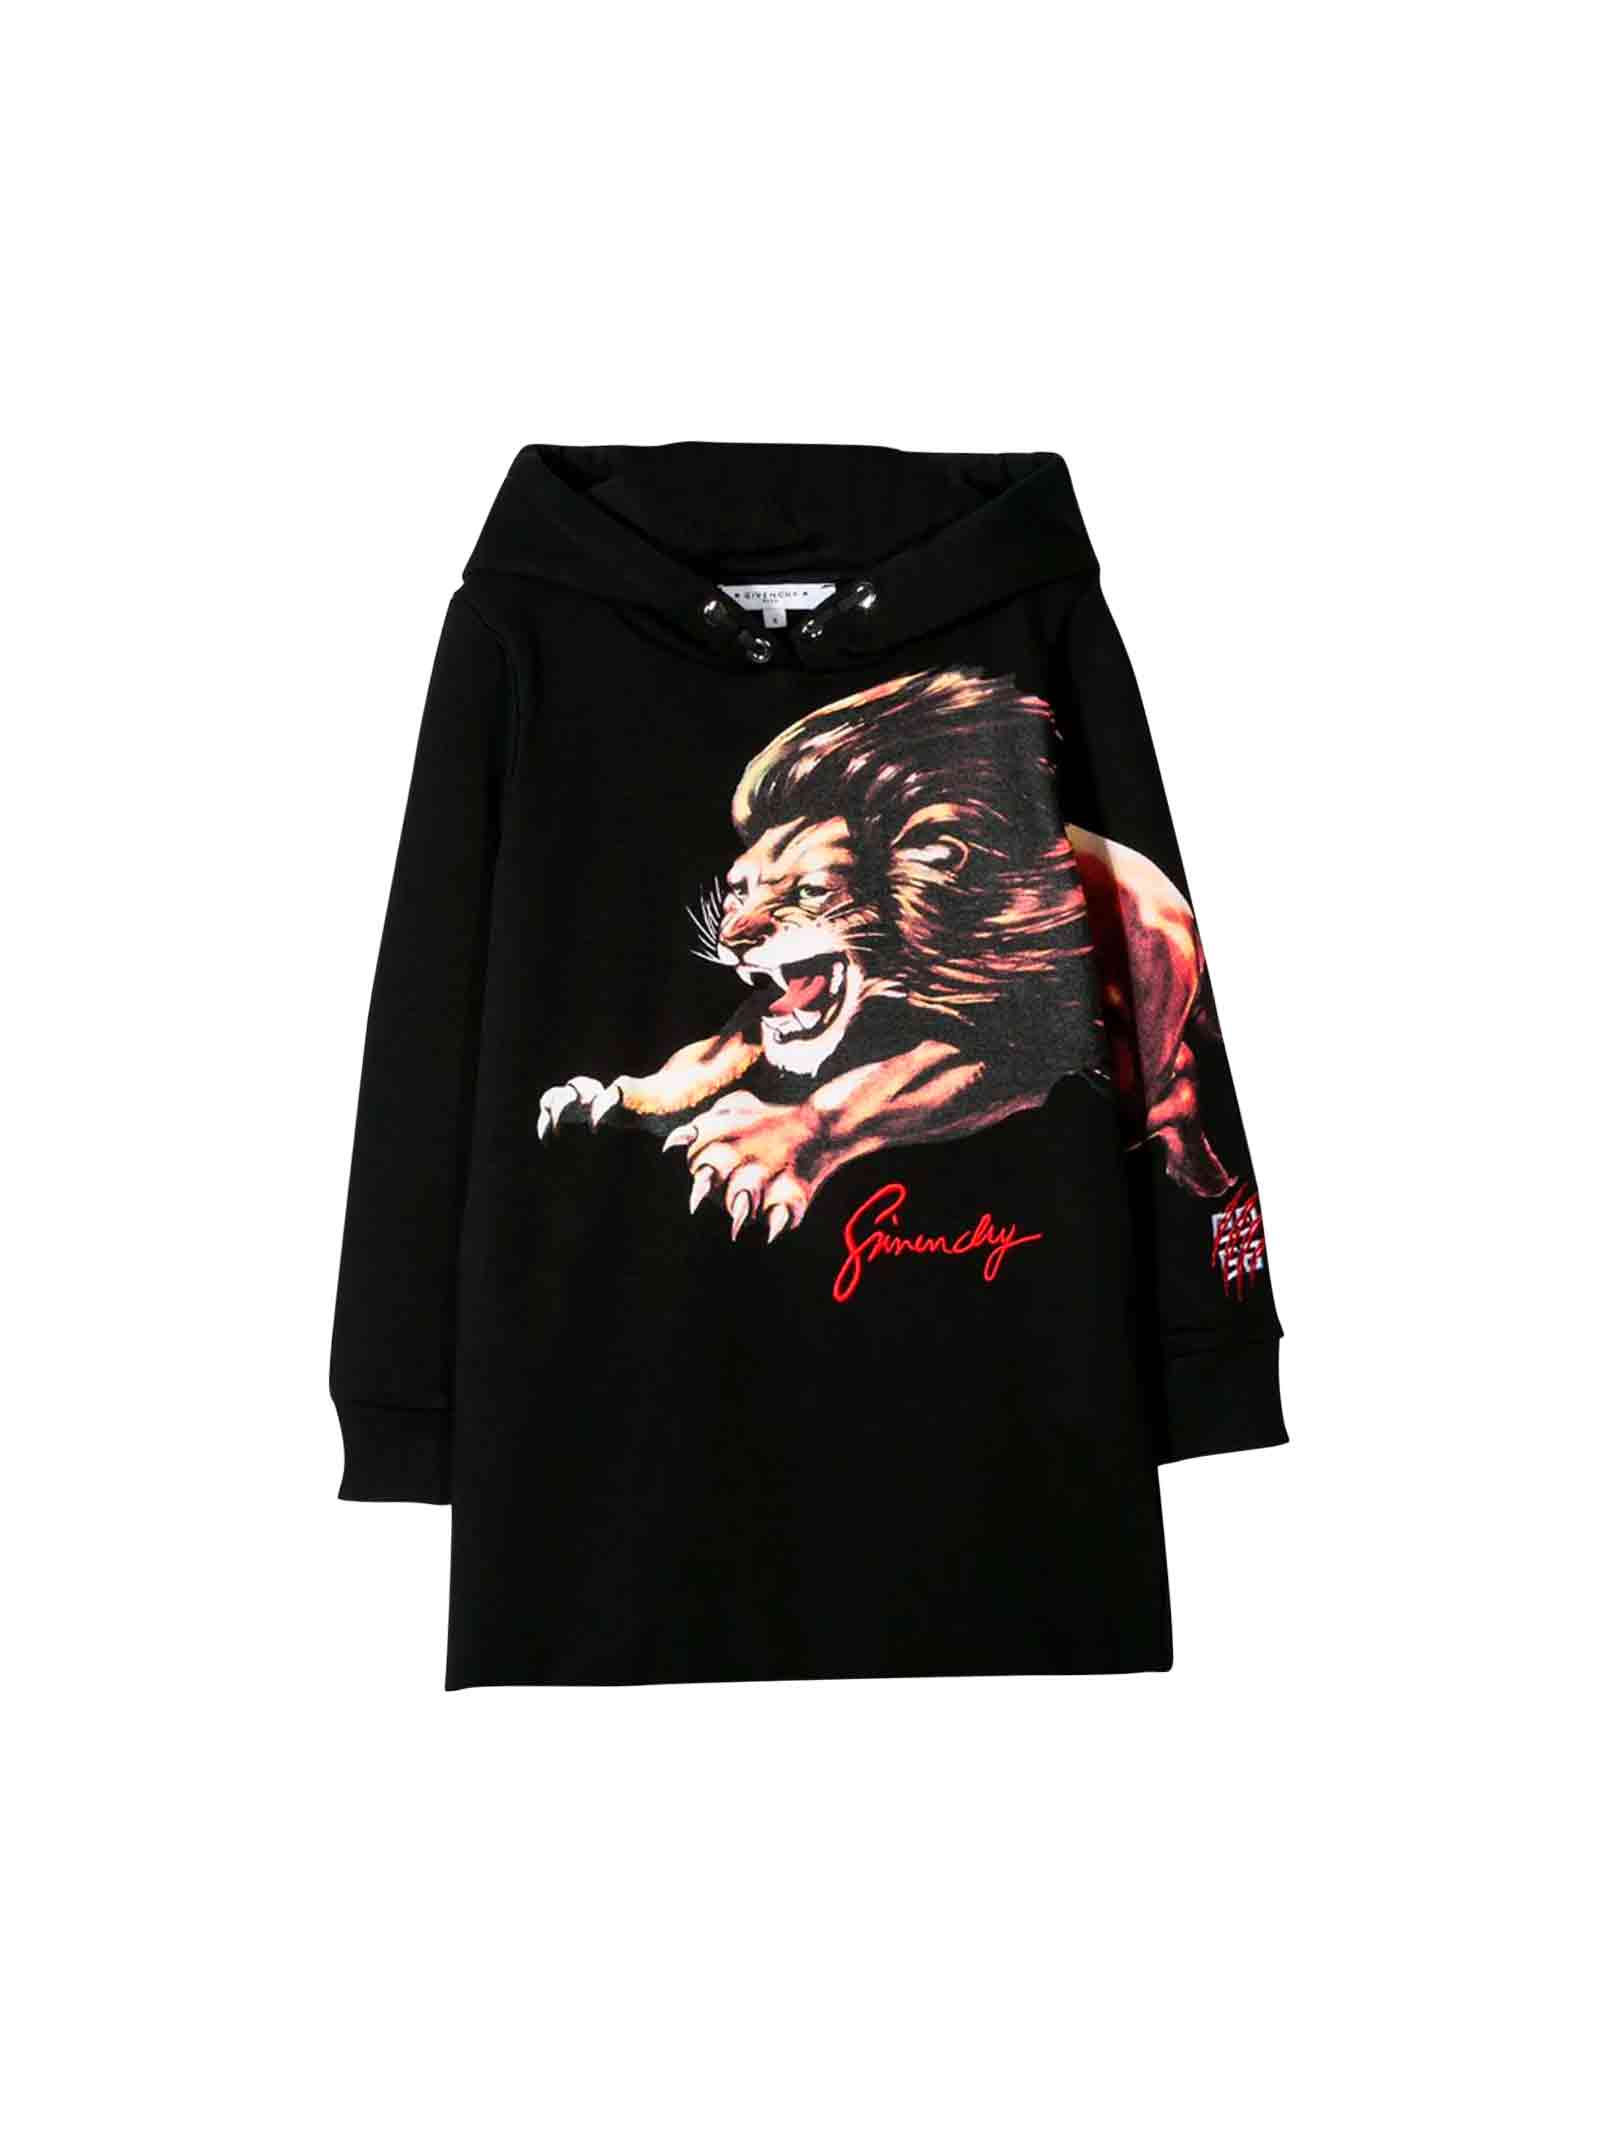 Givenchy Black Sweatshirt Dress Teen